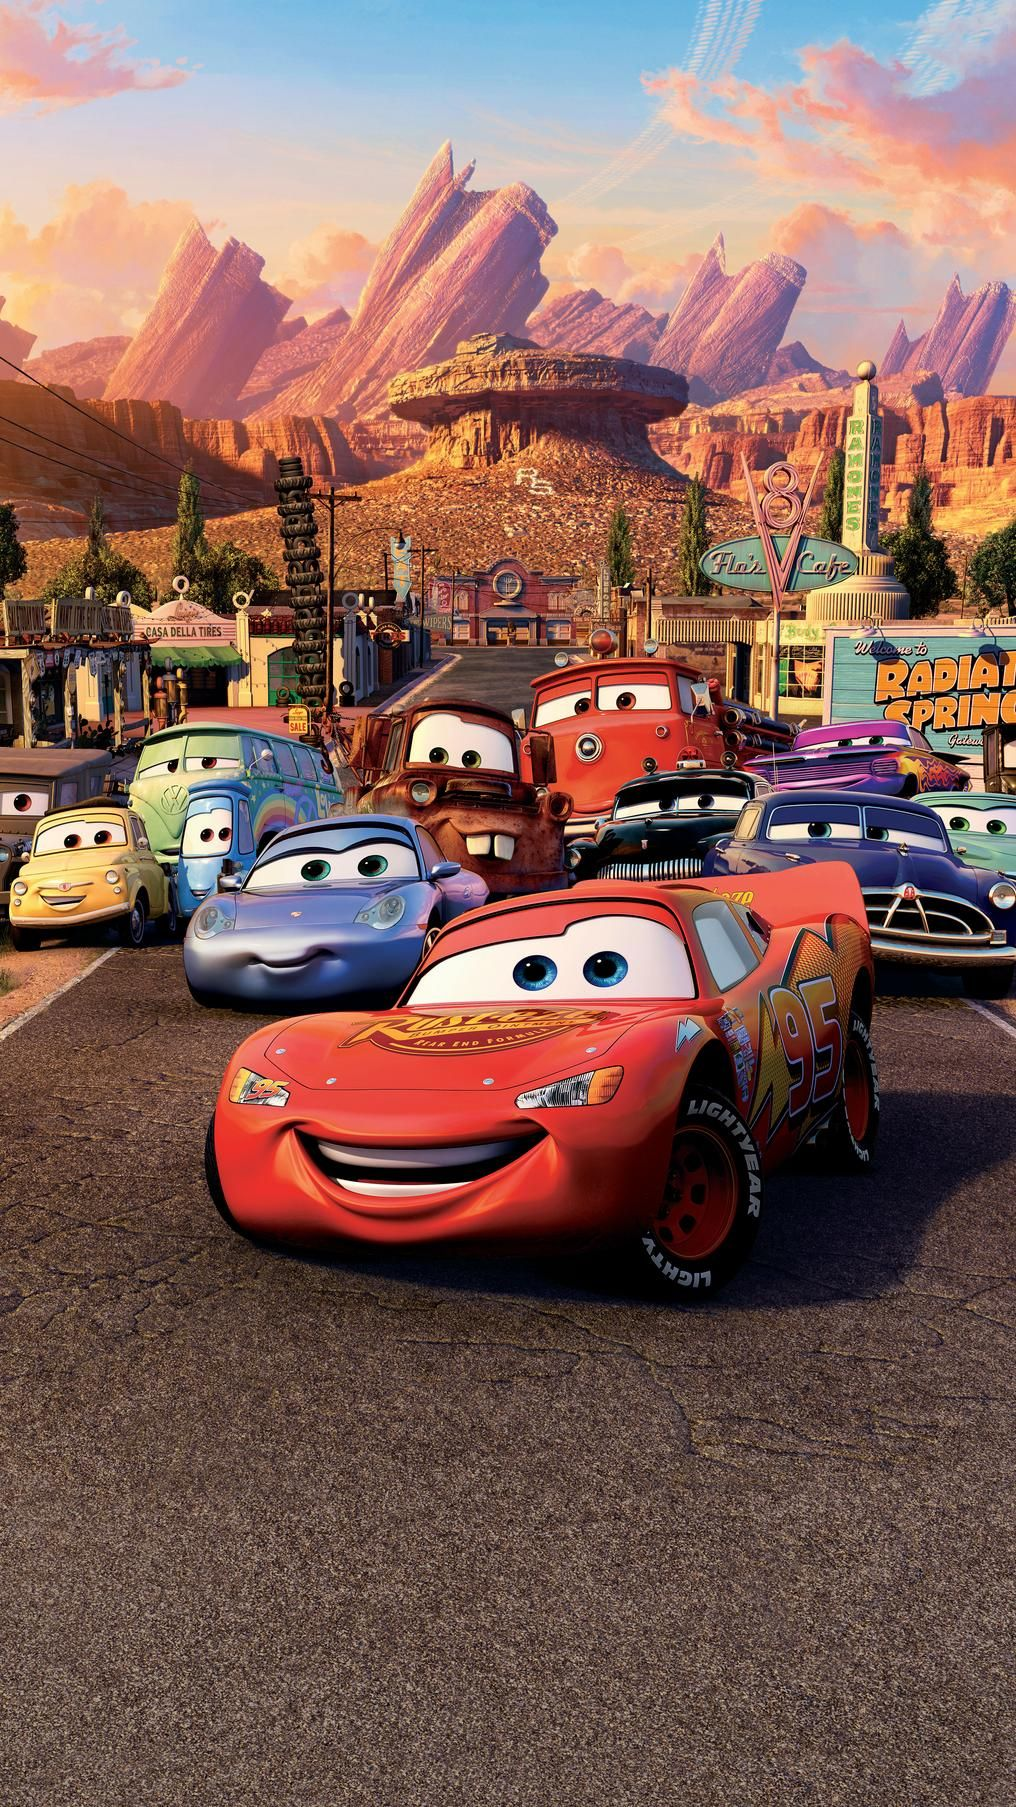 Cars 2006 Phone Wallpaper Moviemania Cars Cartoon Disney Disney Cars Wallpaper Cars Movie